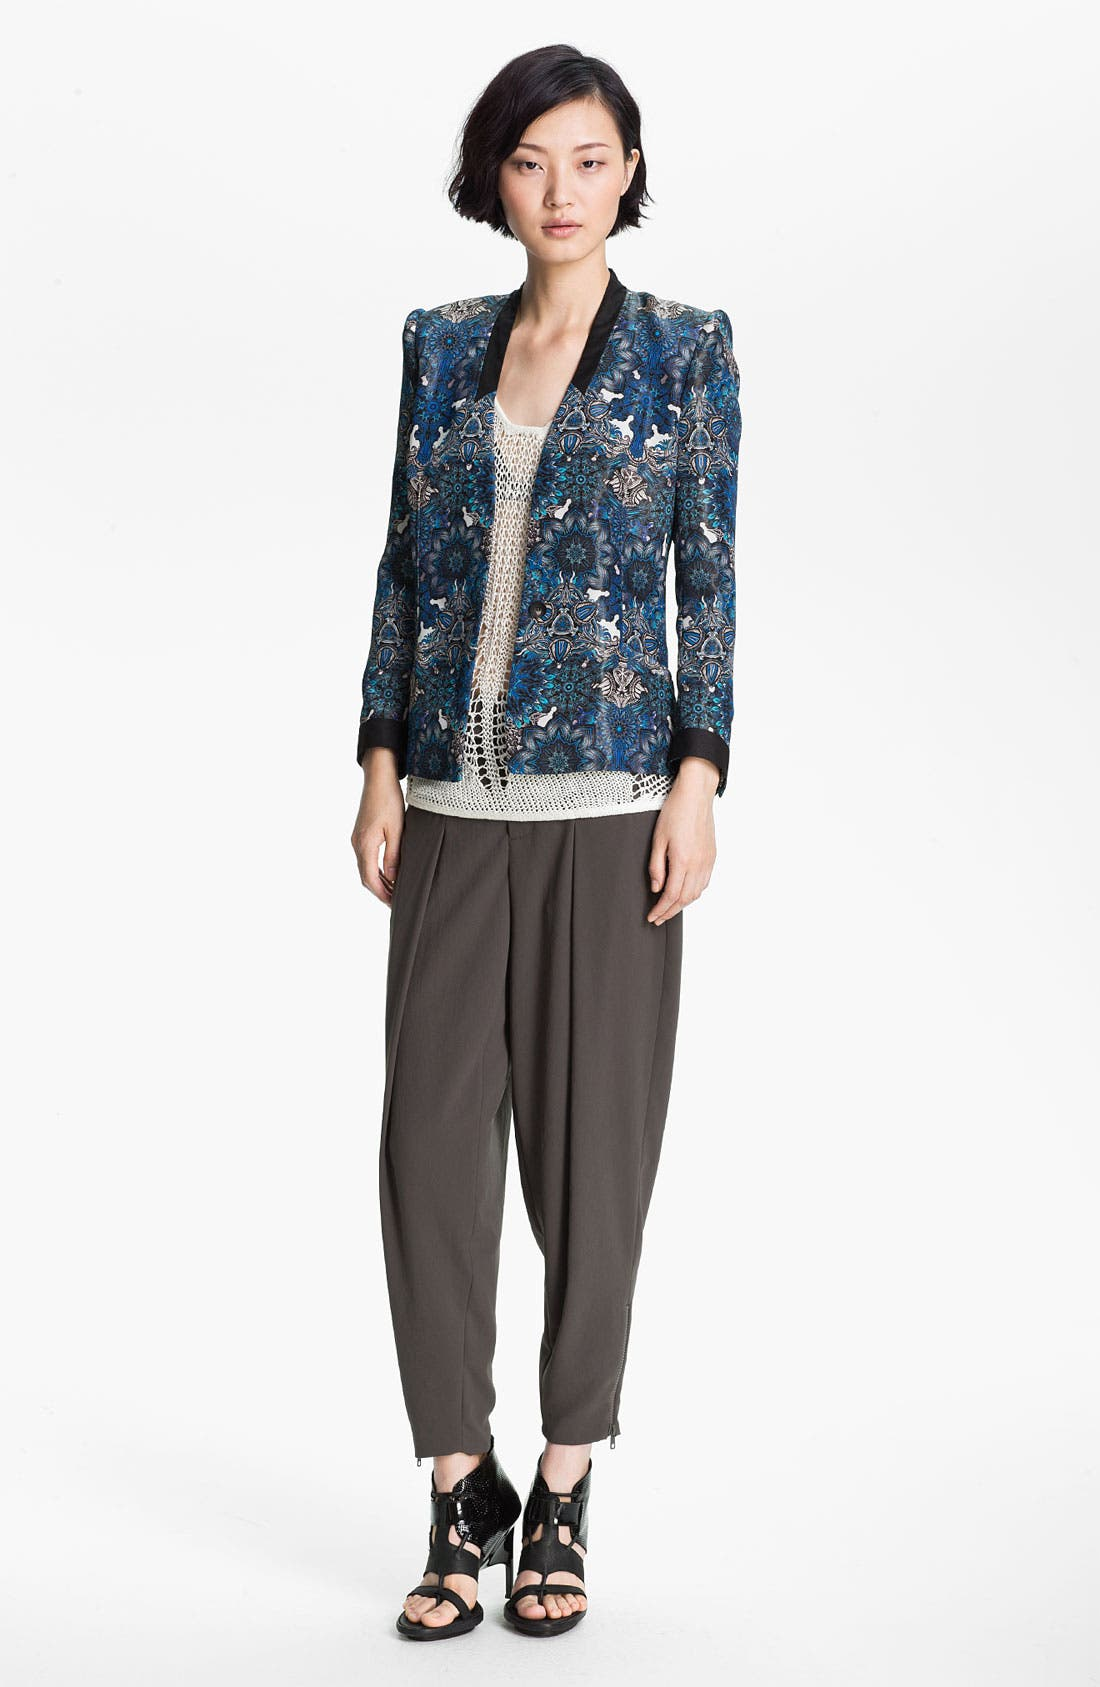 Alternate Image 1 Selected - Helmut Lang 'Mandala' Print Jacket